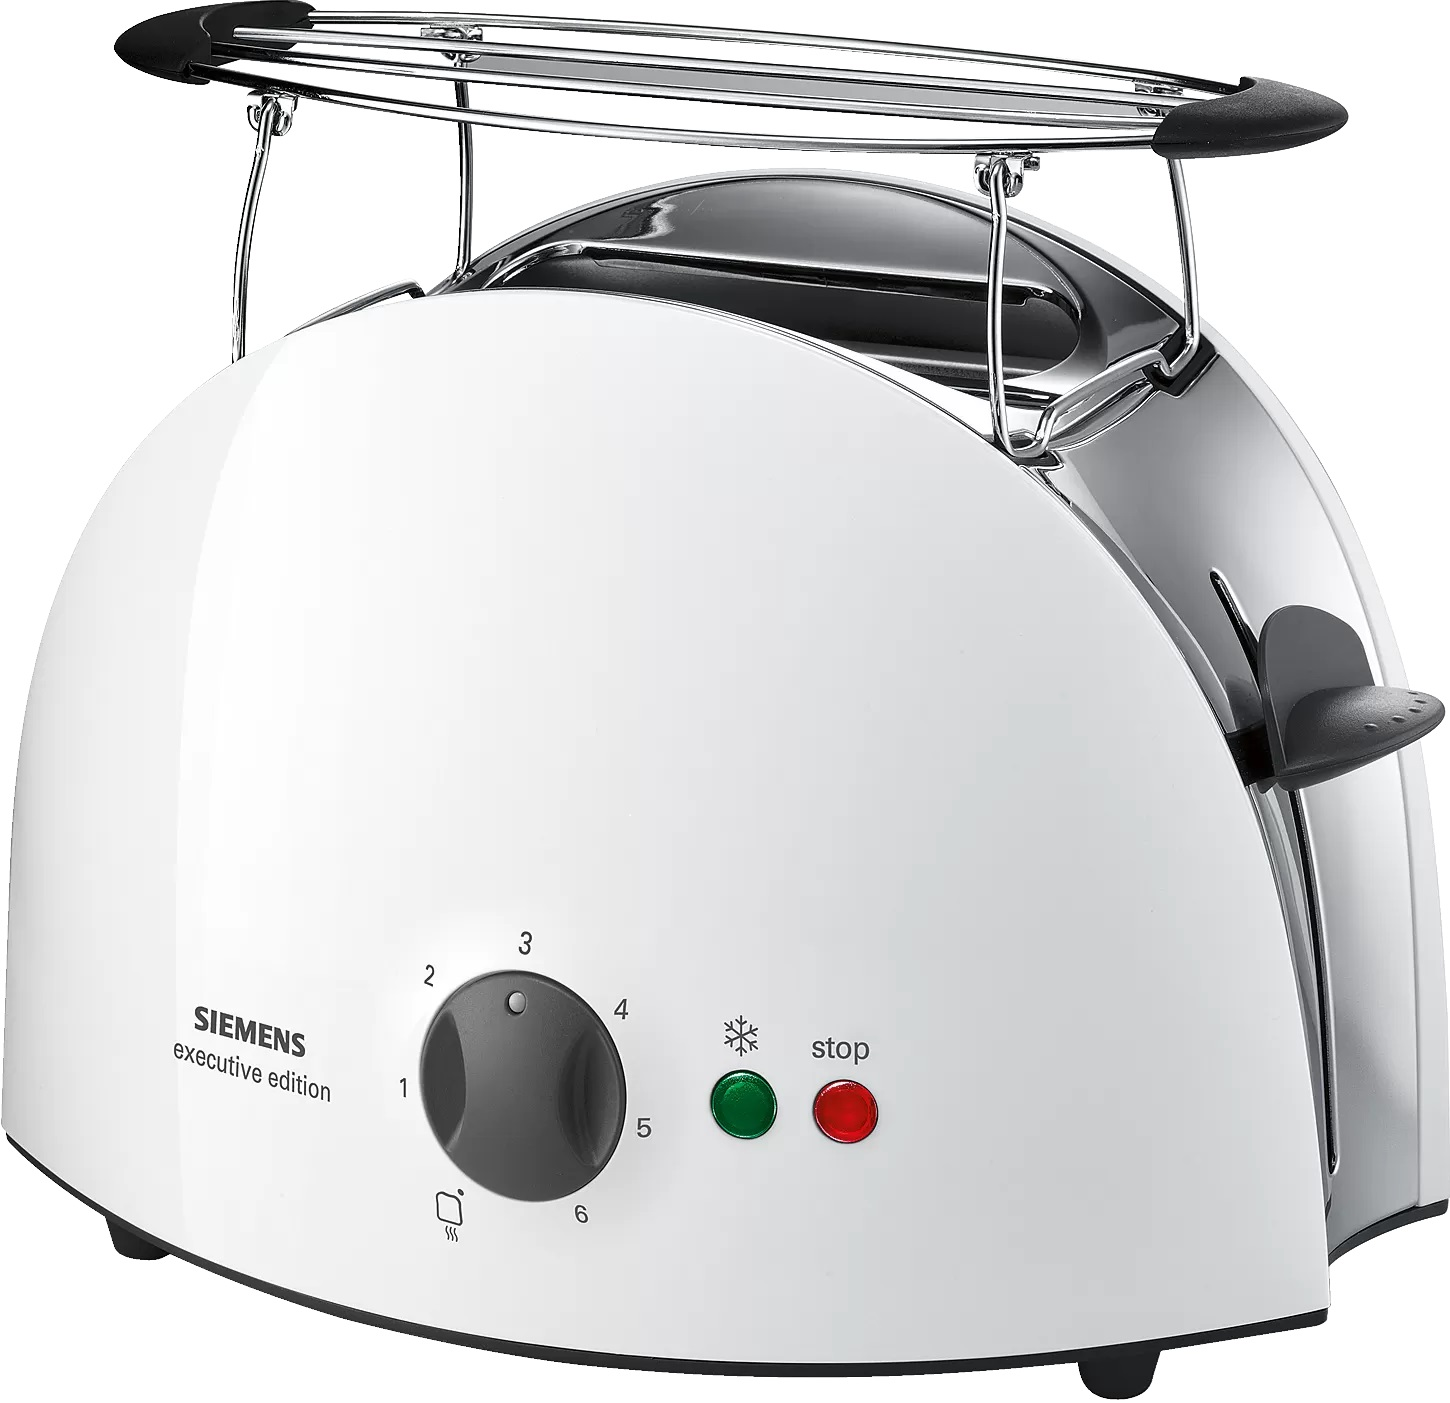 SIEMENSE COMPACT TOASTER